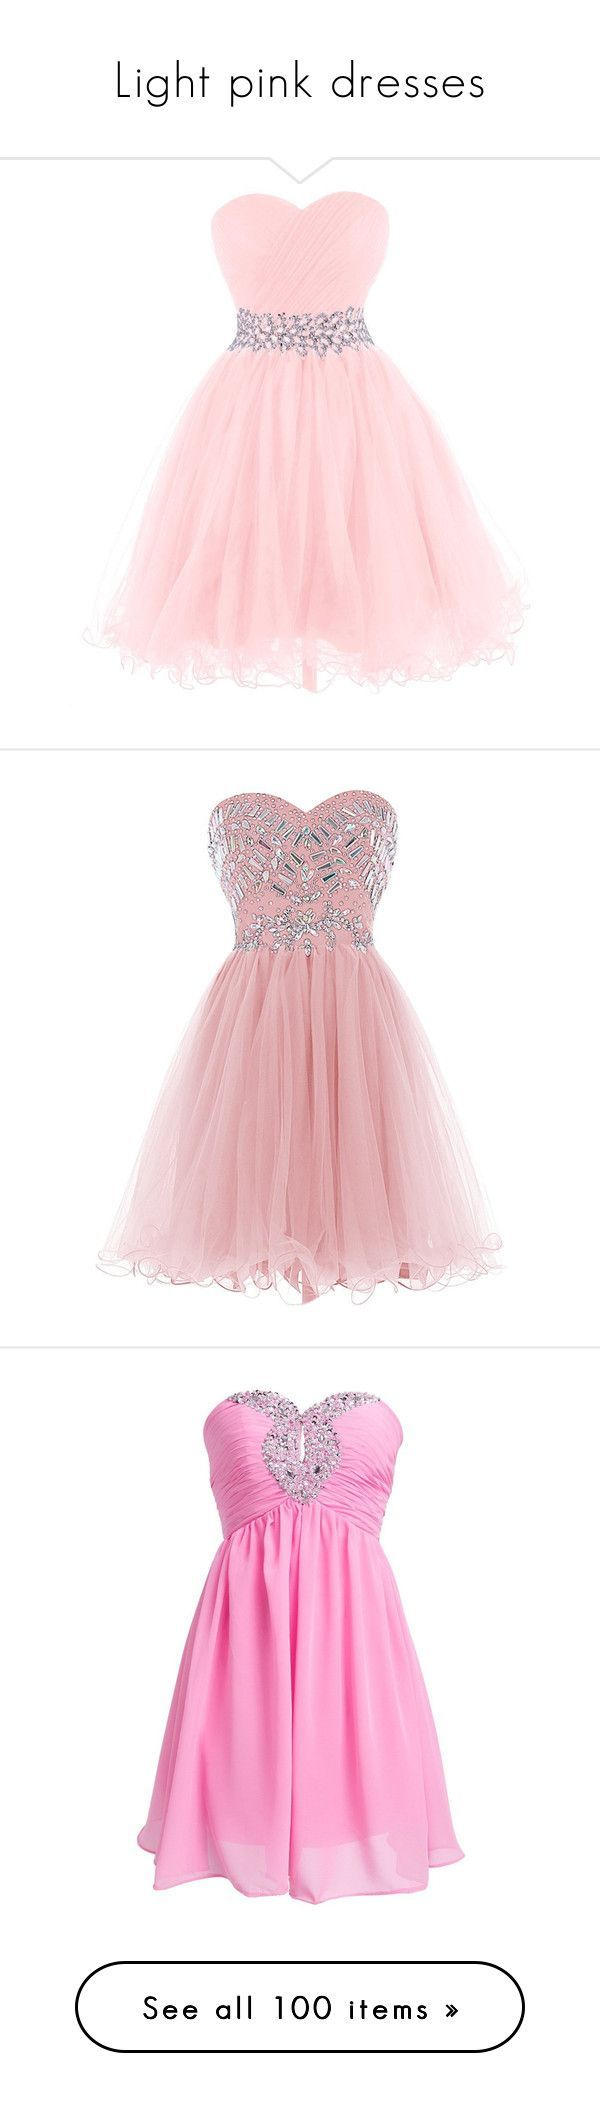 """Light pink dresses"" by megsjessd99 ❤ liked on Polyvore featuring dresses, gowns, gown, pink, homecoming dresses, prom dresses, beaded evening gowns, pink dress, prom gowns and short dresses"